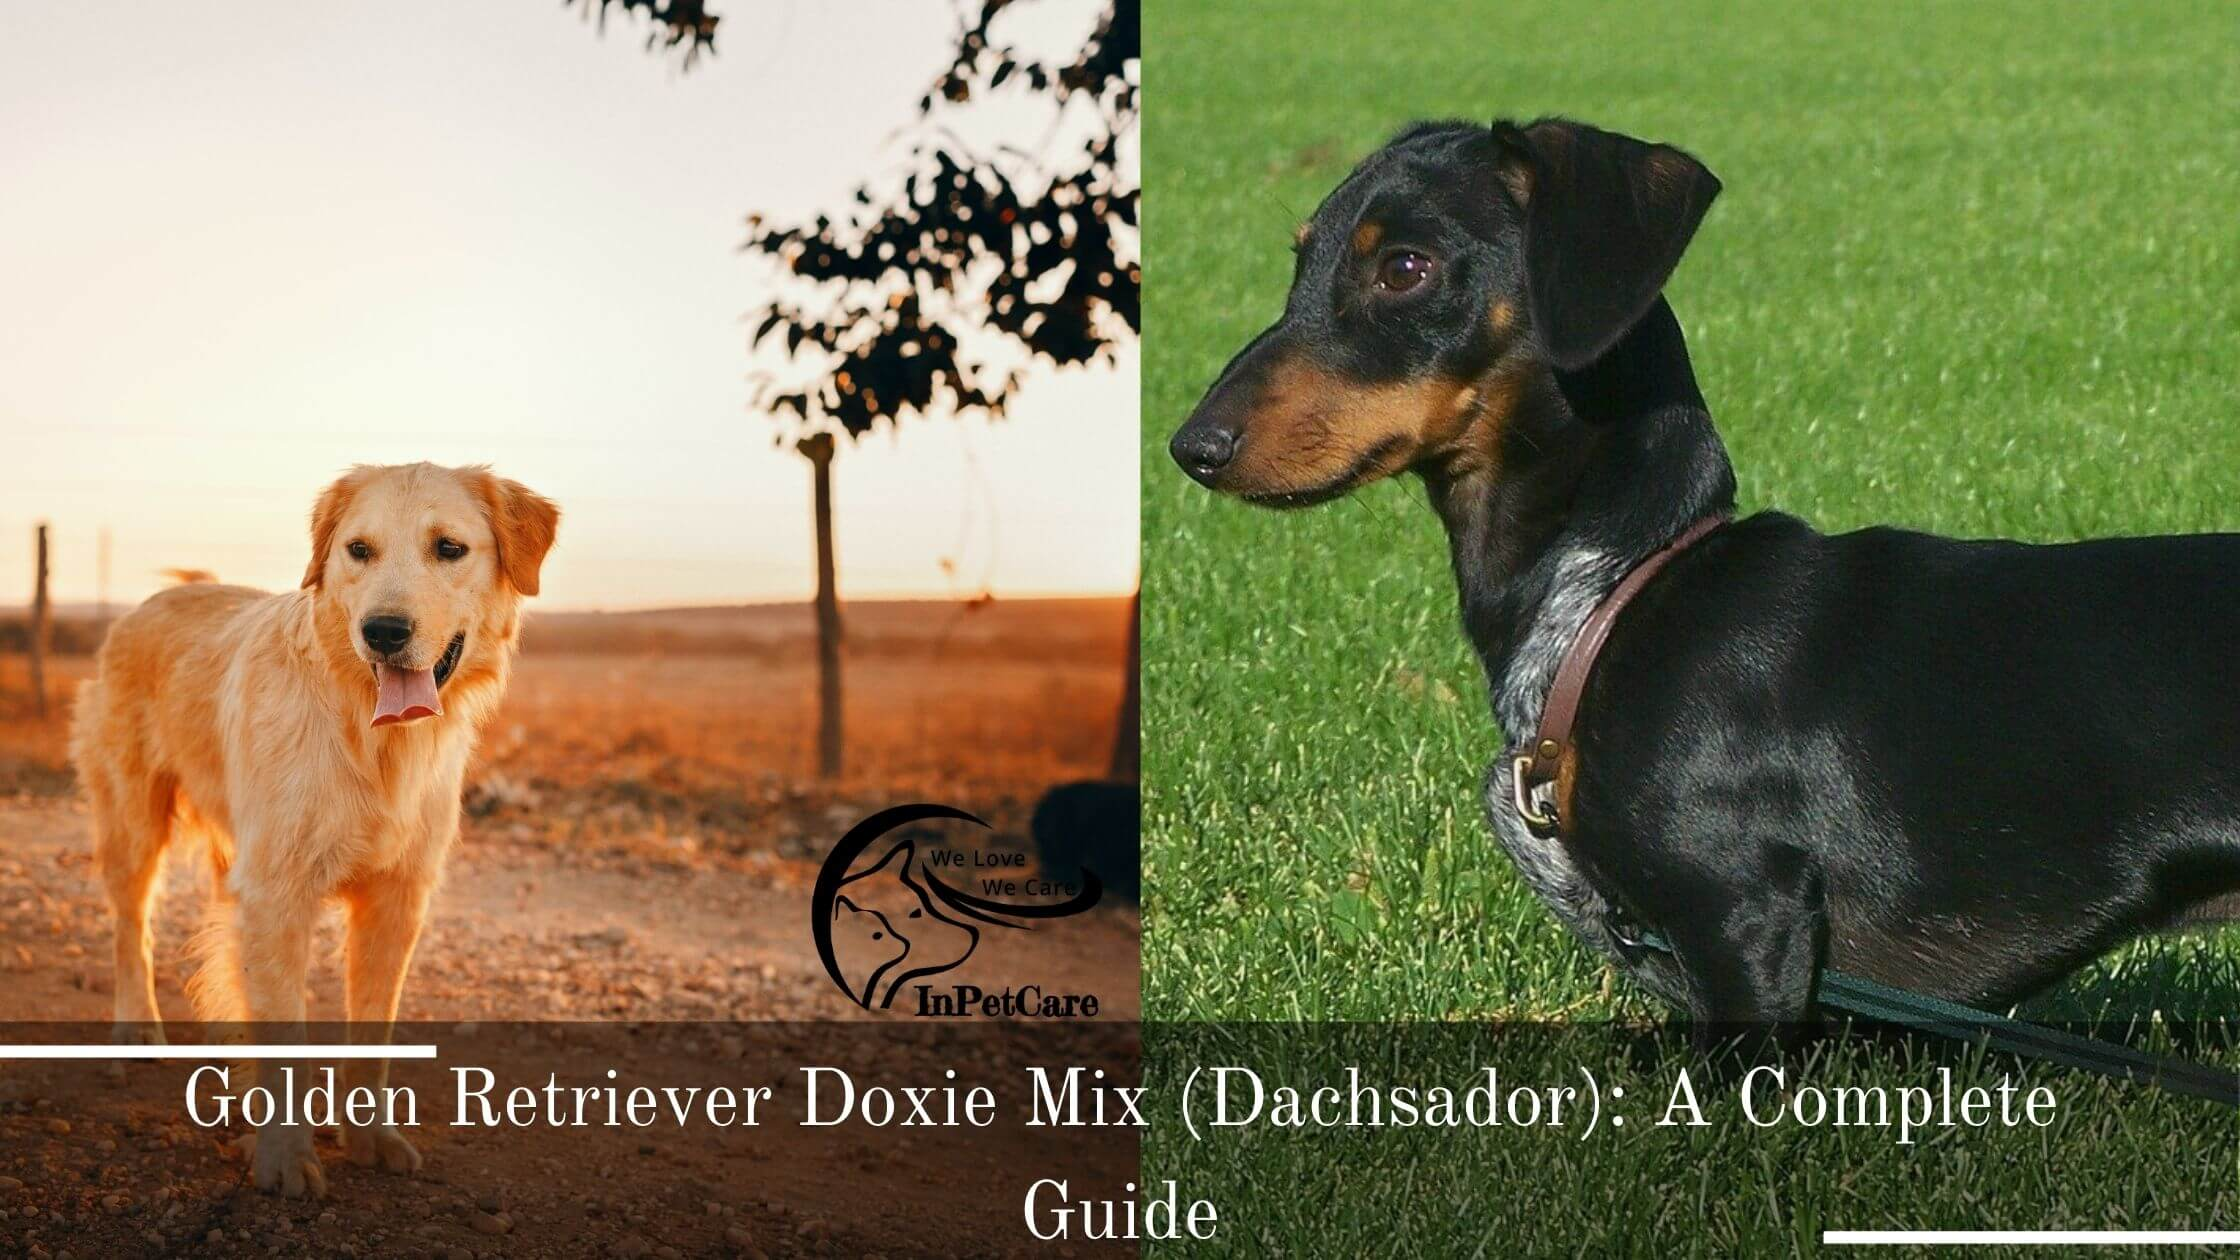 Golden Retriever Doxie Mix (Dachsador): A Complete Guide